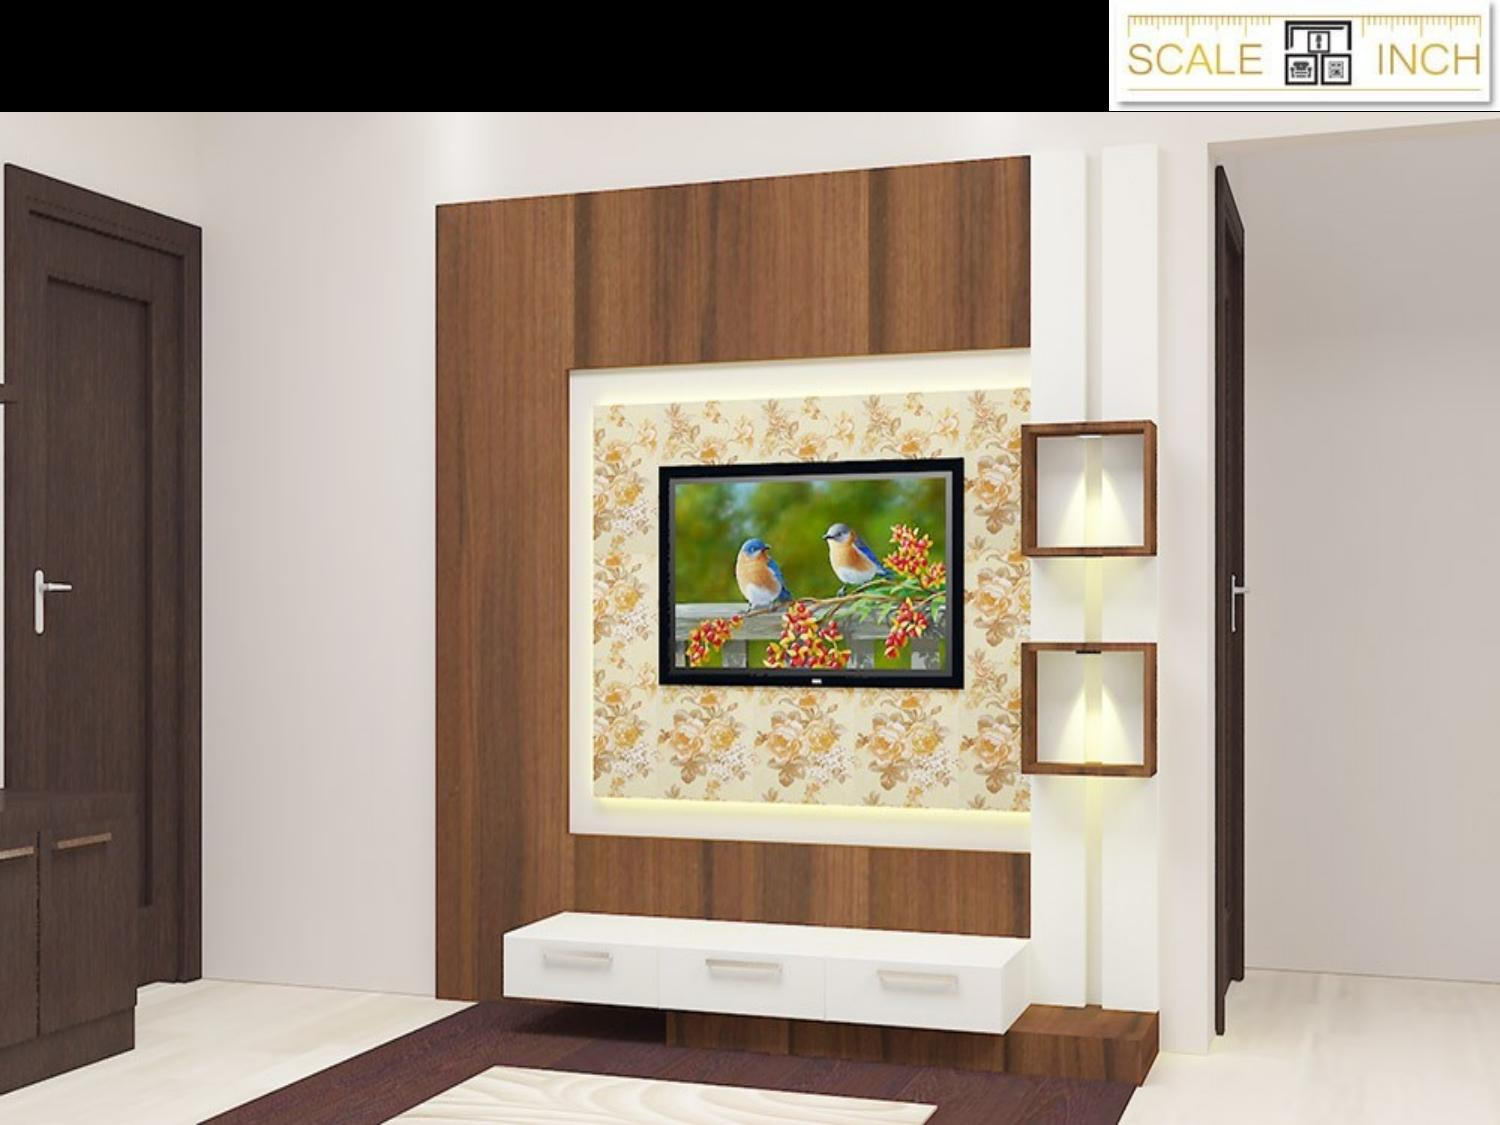 Tv Cabinet Online In India By Rajeshwork Issuu